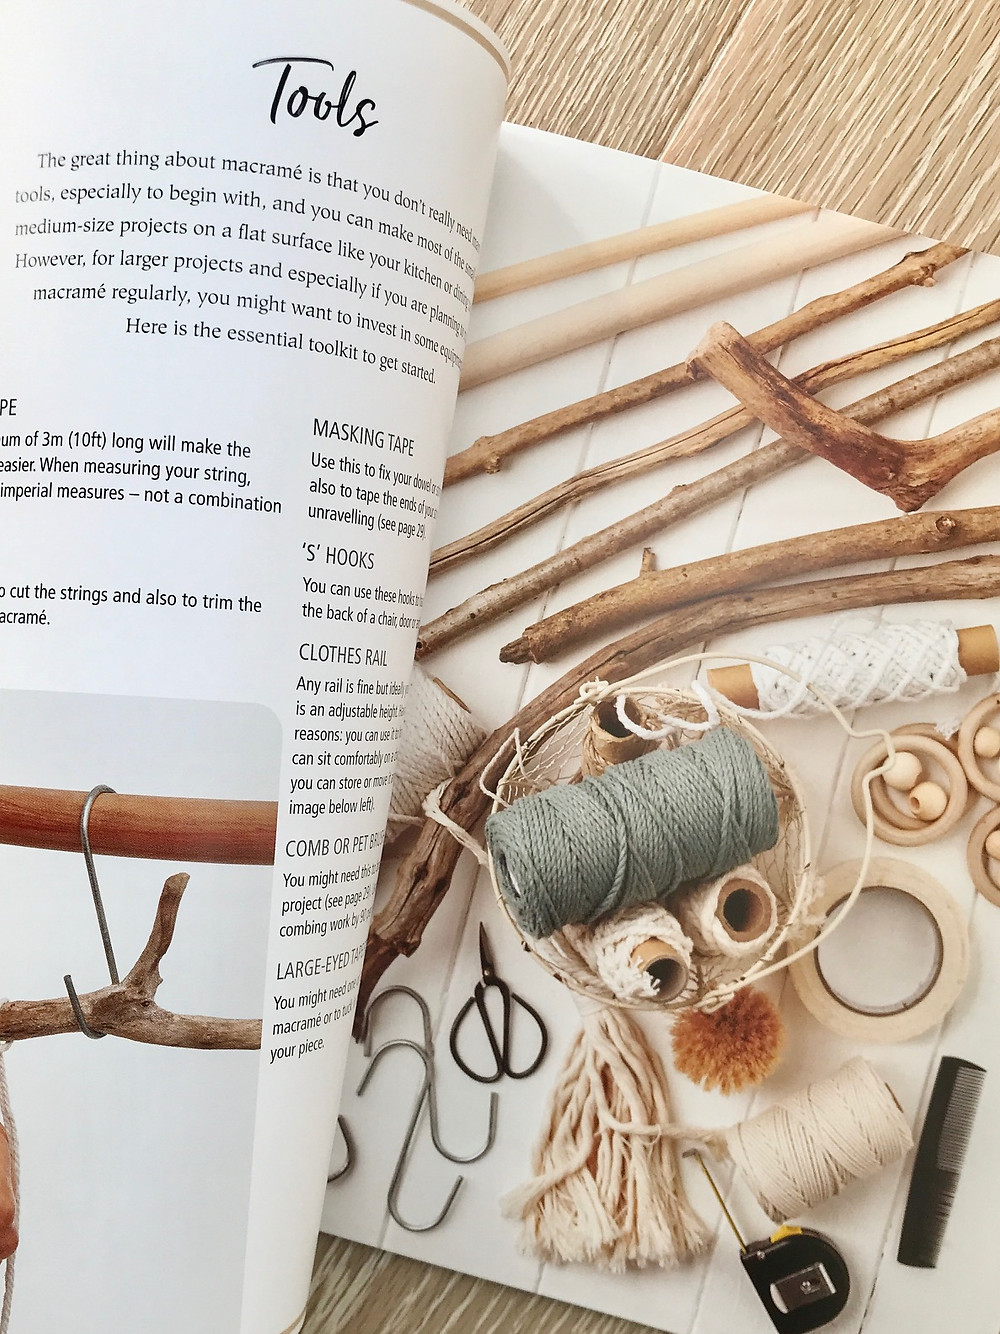 Tools page from the book Macrame for the modern home